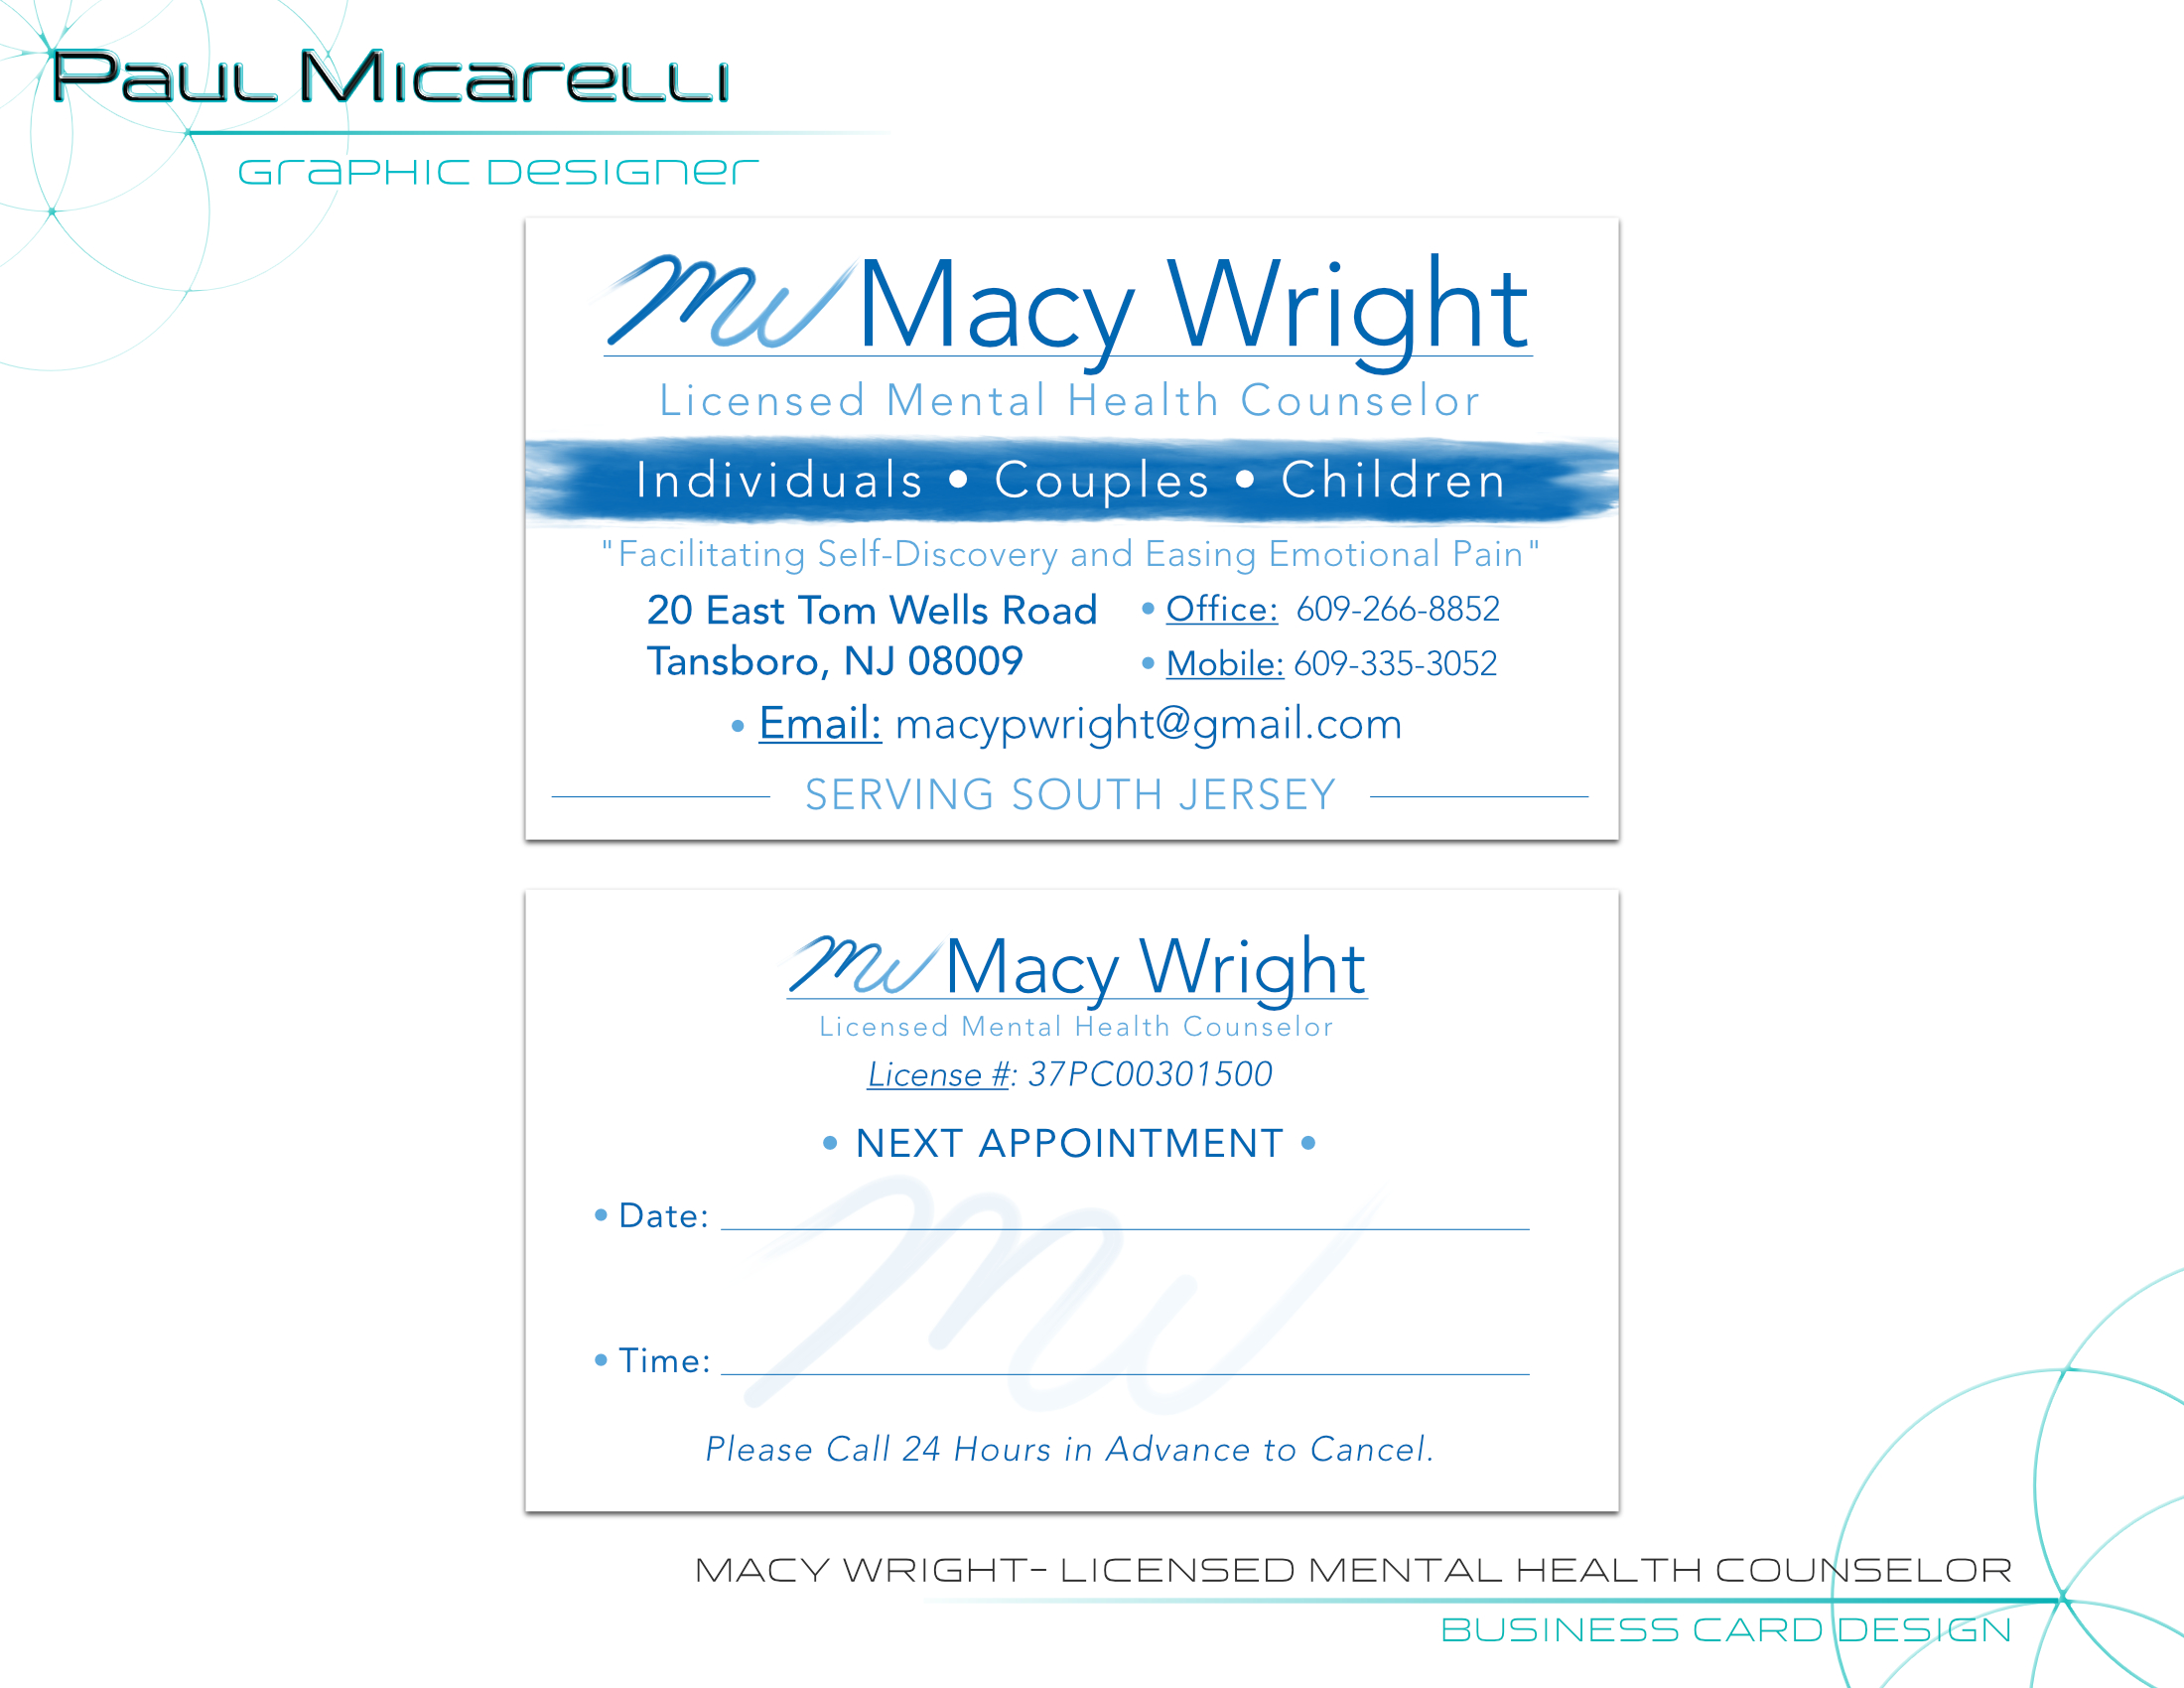 Paul-Micarelli-Macy Wright Business Card